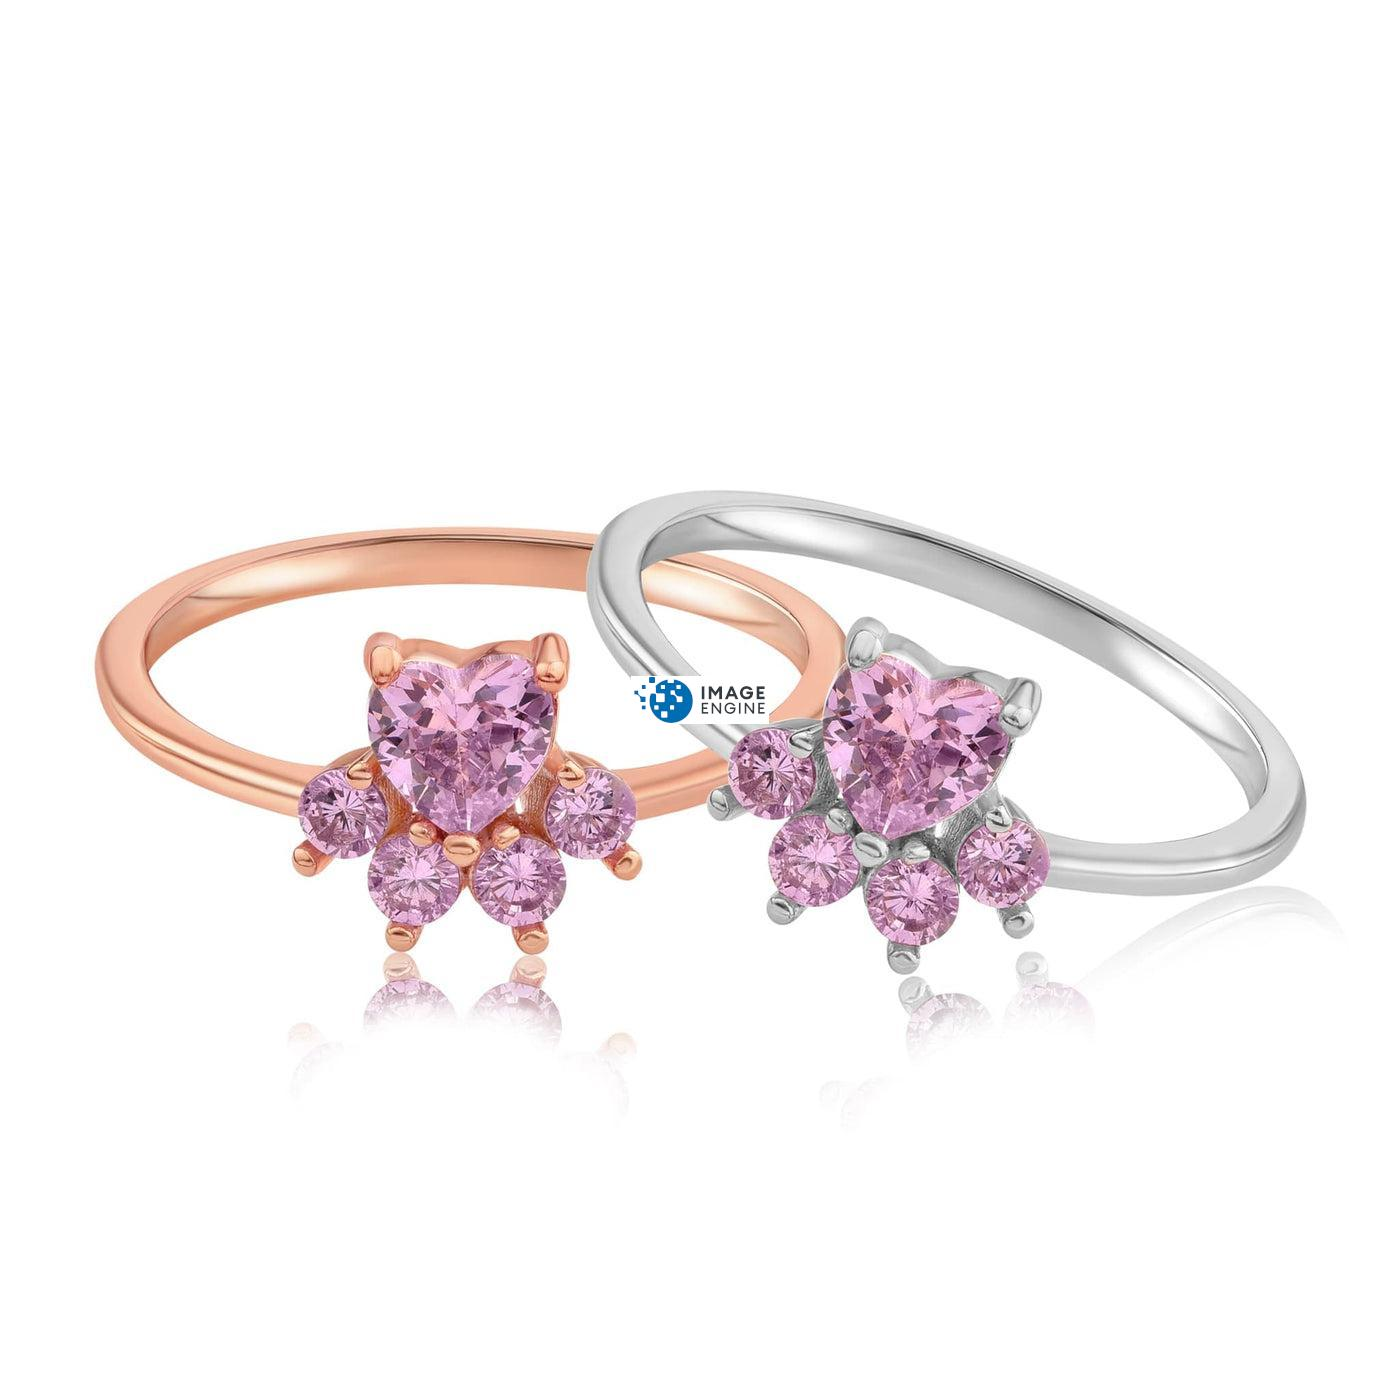 Bella Paw Rose Quartz Ring - Front View SideBy Side - 18K Rose Gold Vermeil and 925 Sterling Silver